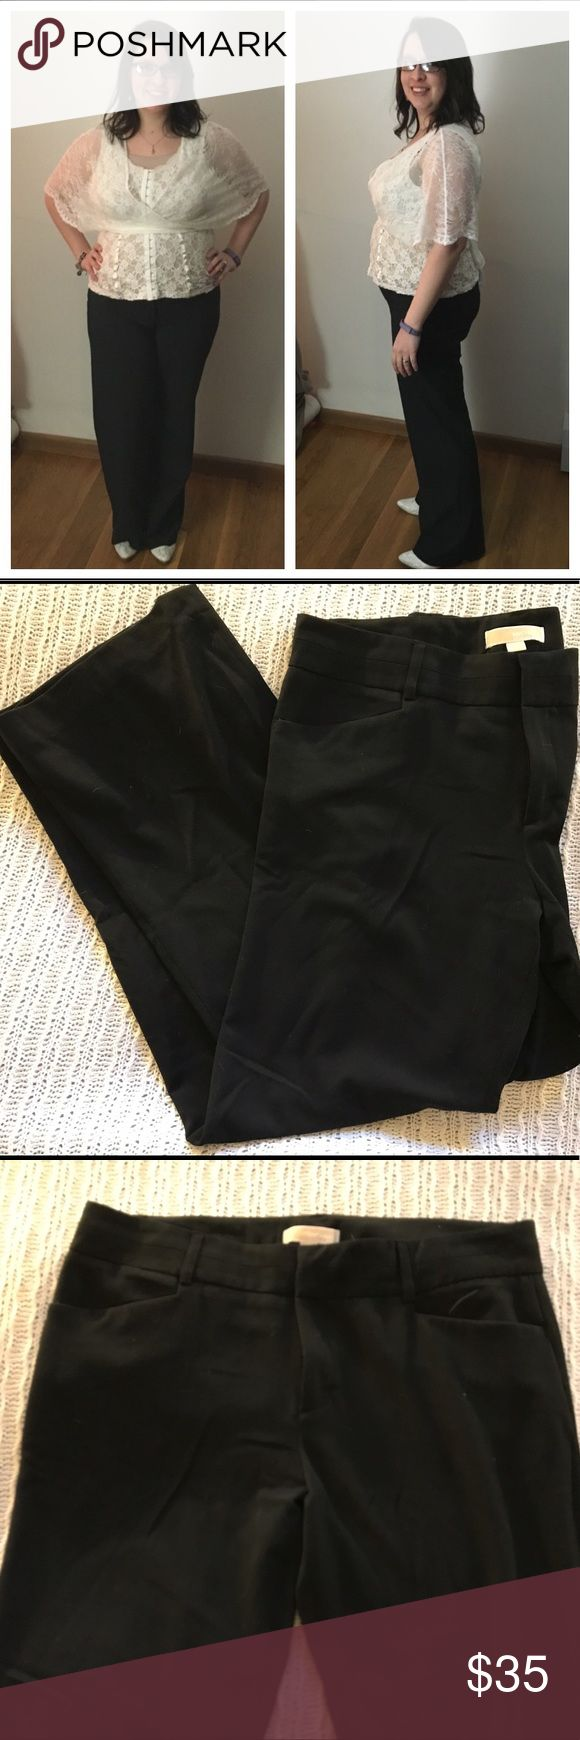 Michael Kors Wool Dress Pants Gently worn dress pants from Michael Kors. Used only for special occasions and job interviews. MICHAEL Michael Kors Pants Trousers